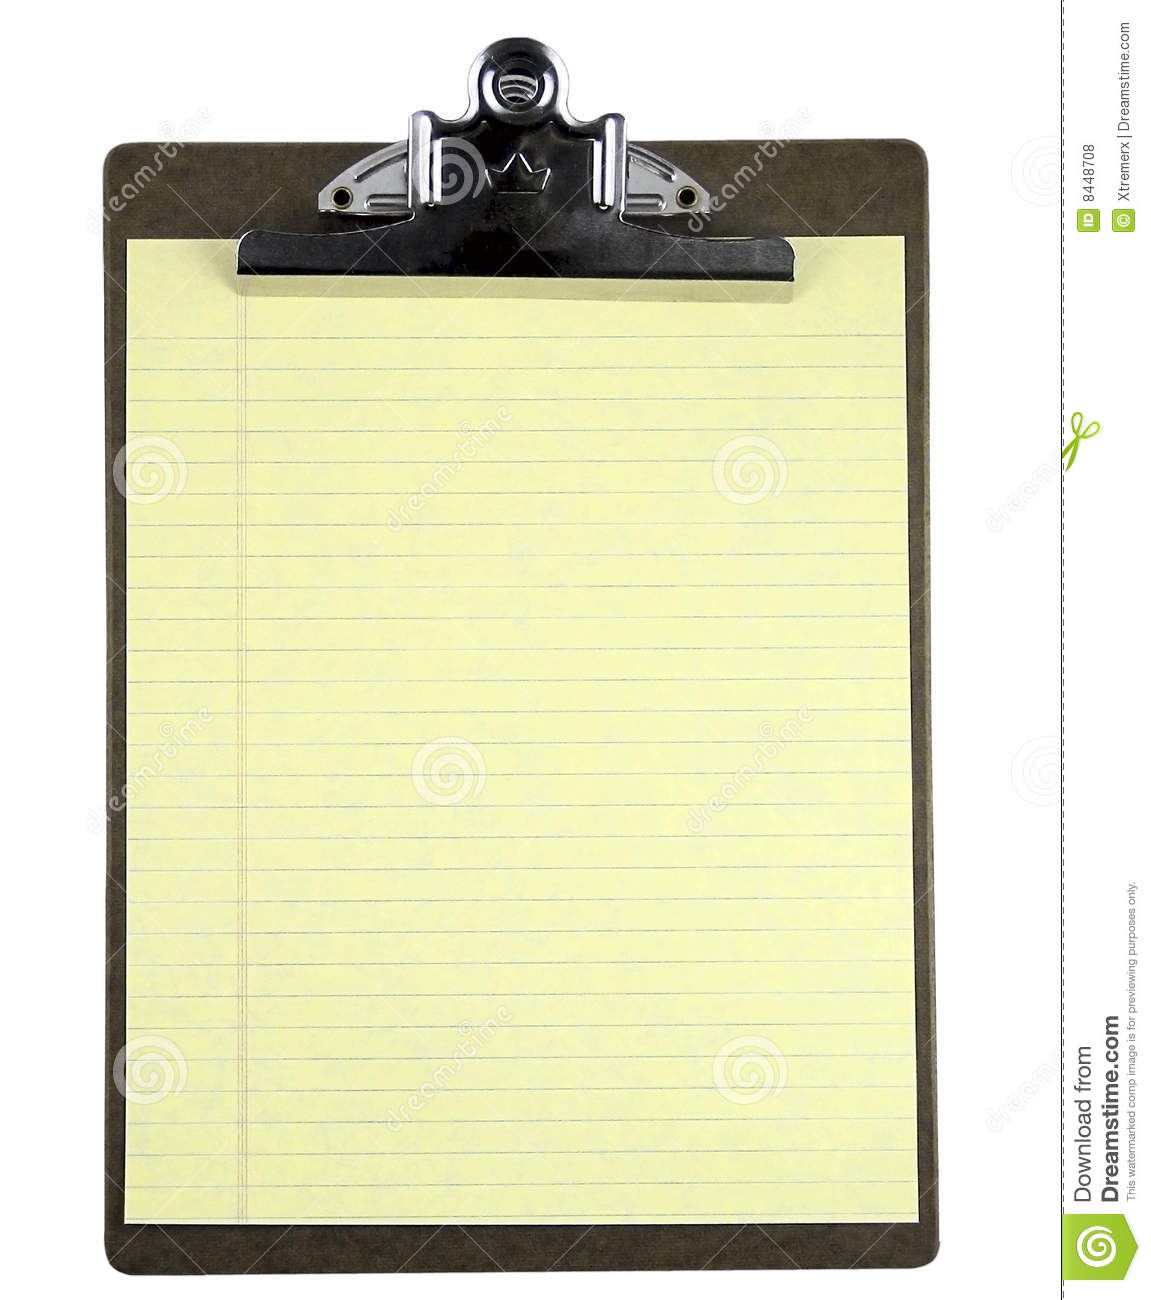 Blank Clipboard Notepad Isolated On White  Royalty Free Stock Photos